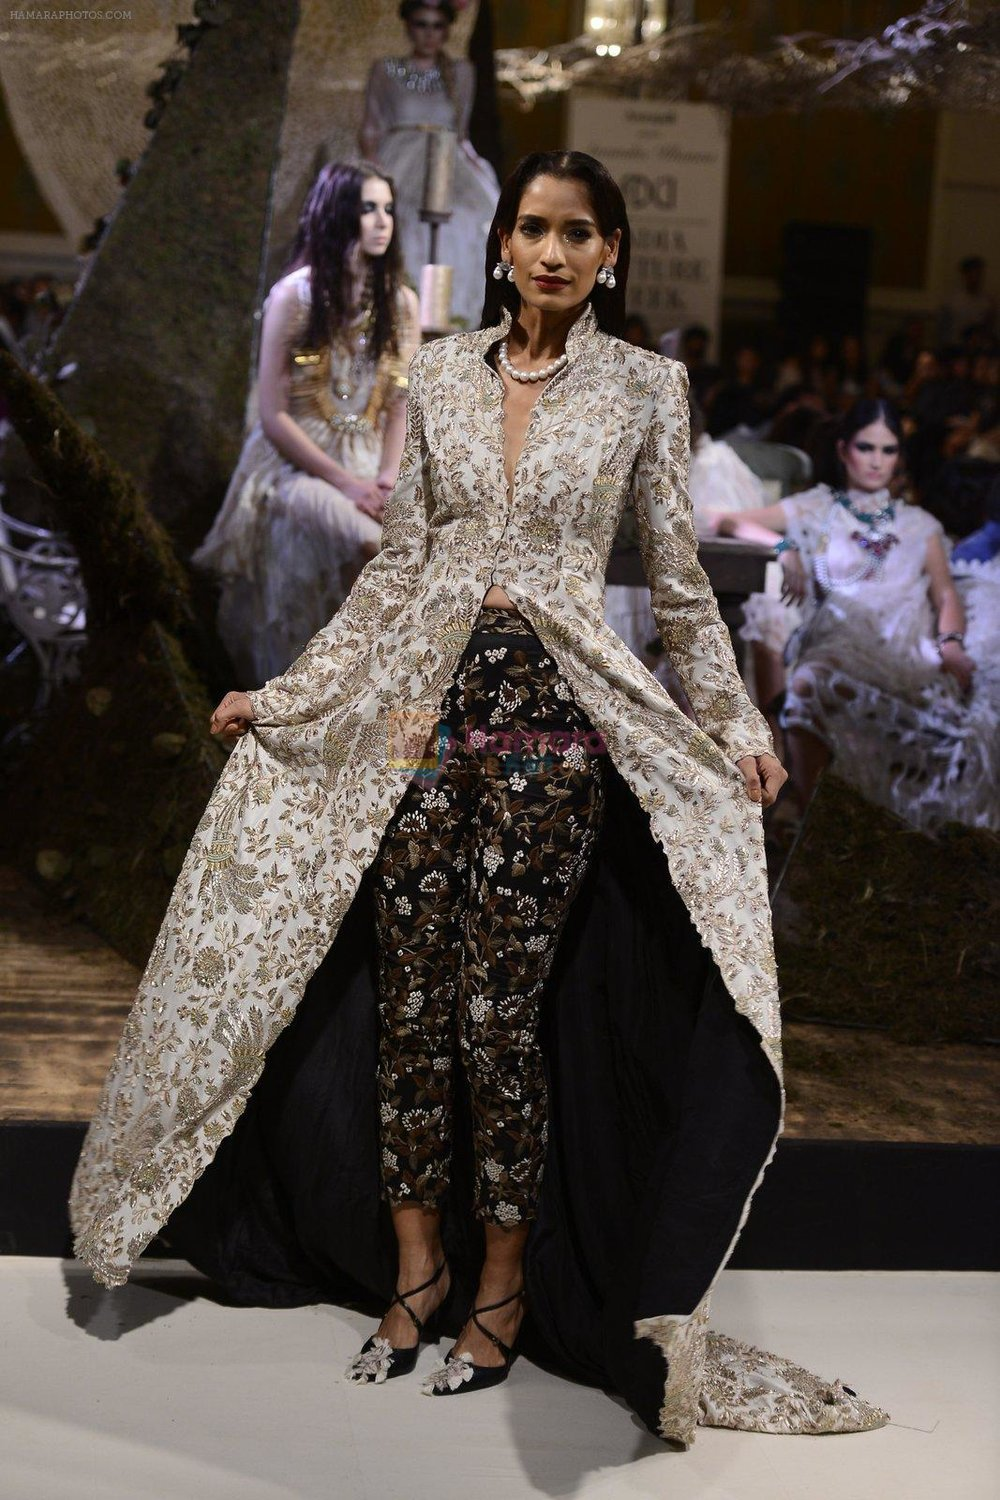 A-Model-during-Anamika-Khanna-showcase-When-Time-Stood-Still-at-the-FDCI-India-Couture-Week-2016-on-22-July-2016.jpg